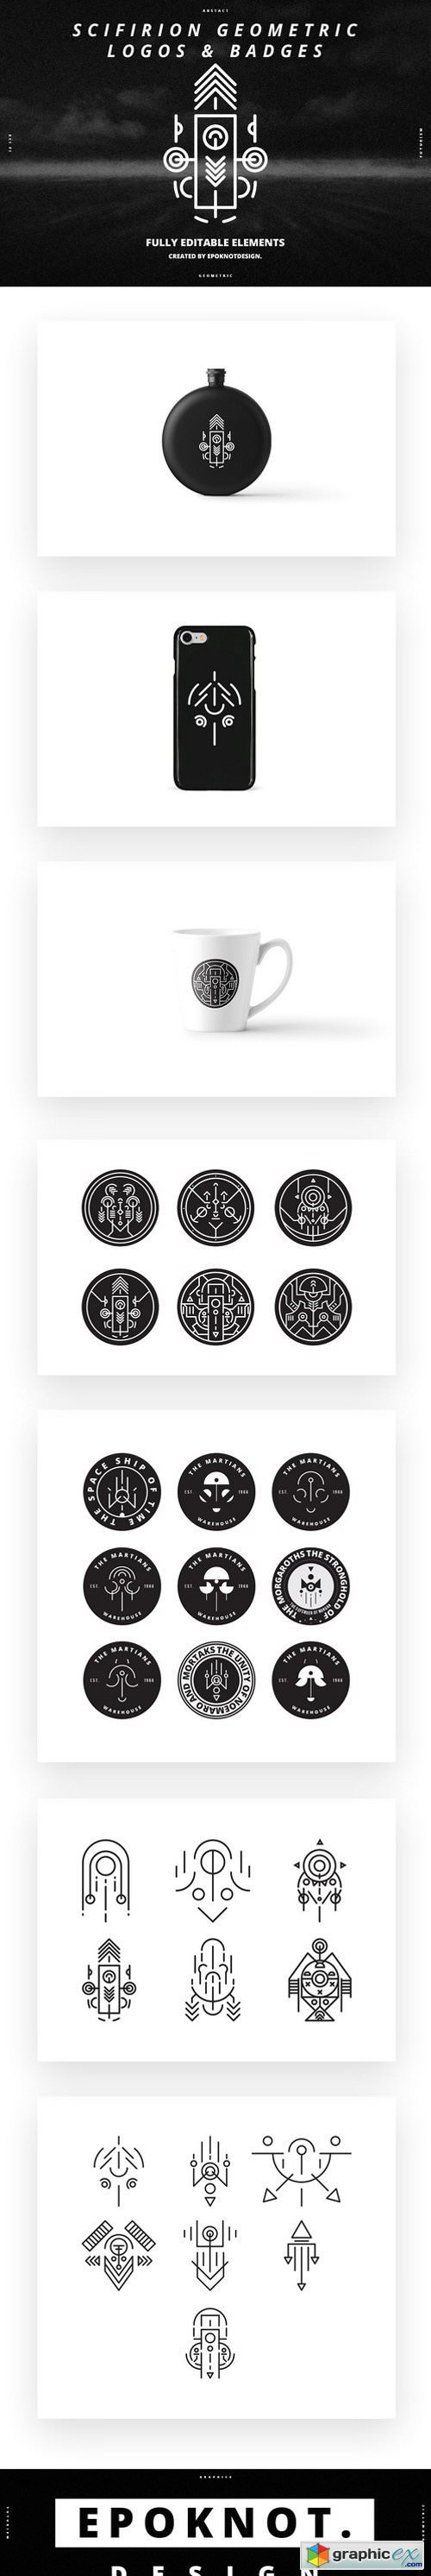 Scifirion Geometric Logos and Badges